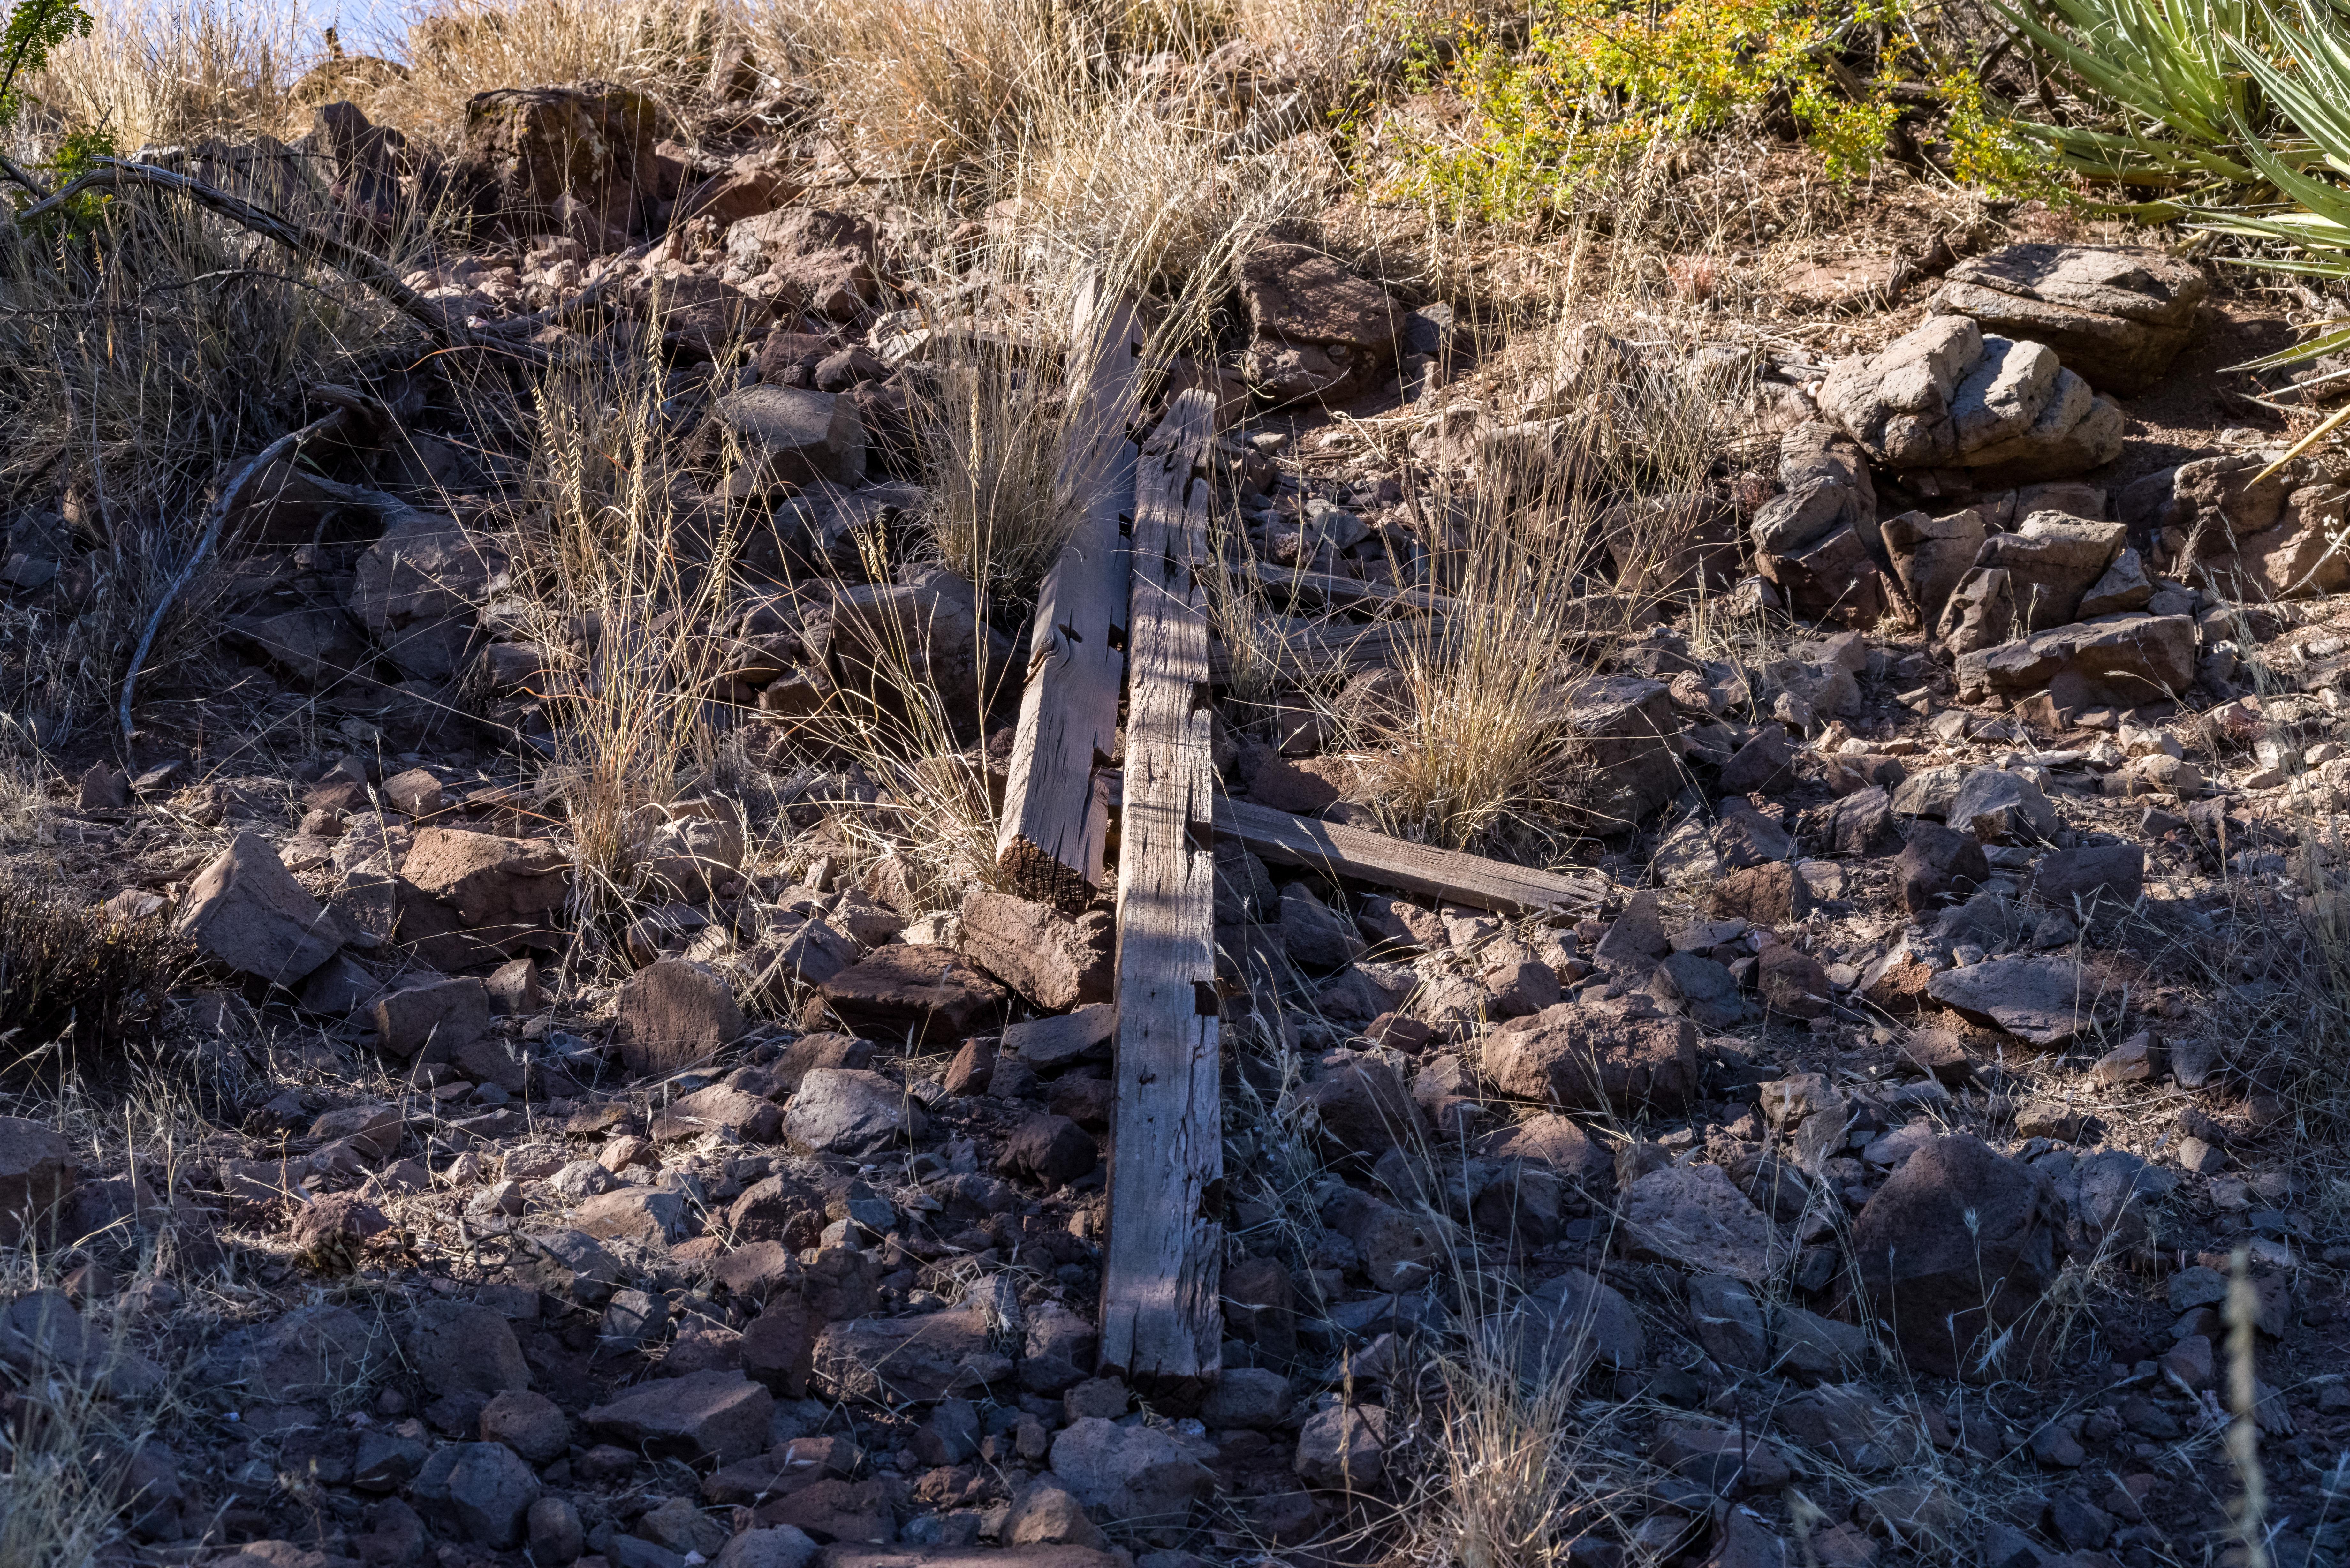 Spill gate/sandbox location along Flume Trail, Tonto National Forest, Red Rock Ranger District, Pentax K-1, Outdoors, HQ Photo